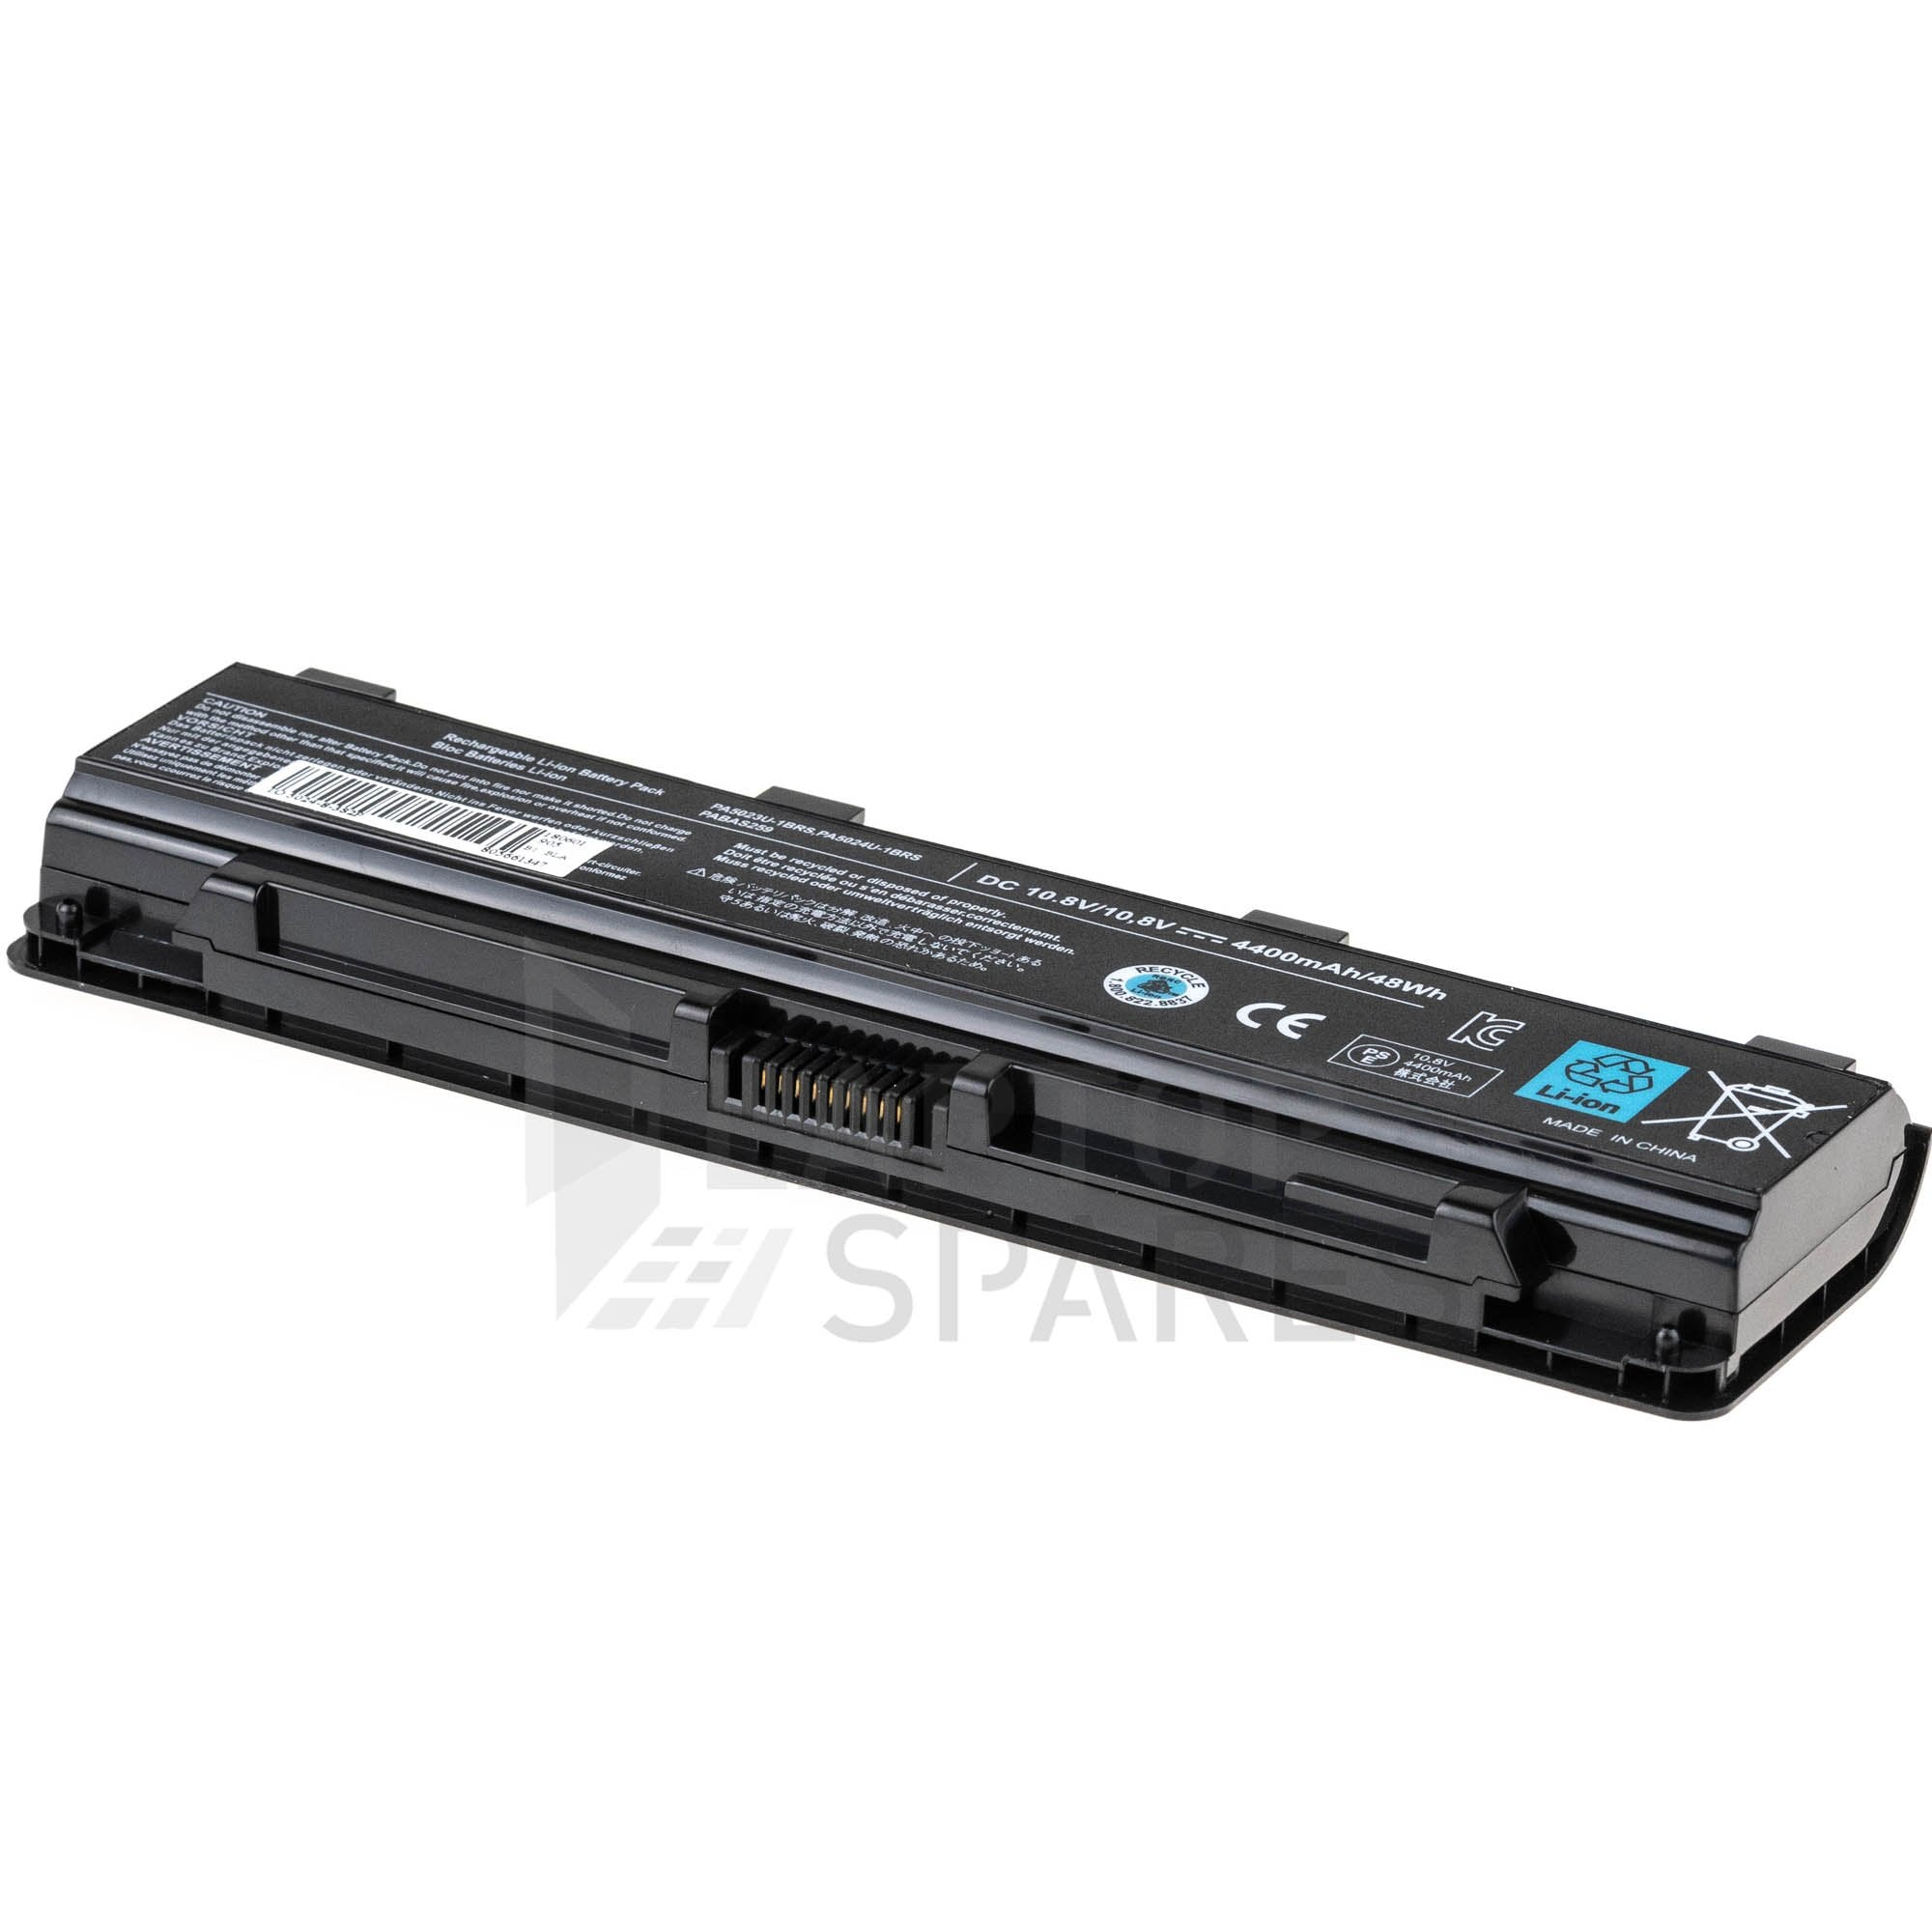 Toshiba Satellite M805D 4400mAh 6 Cell Battery